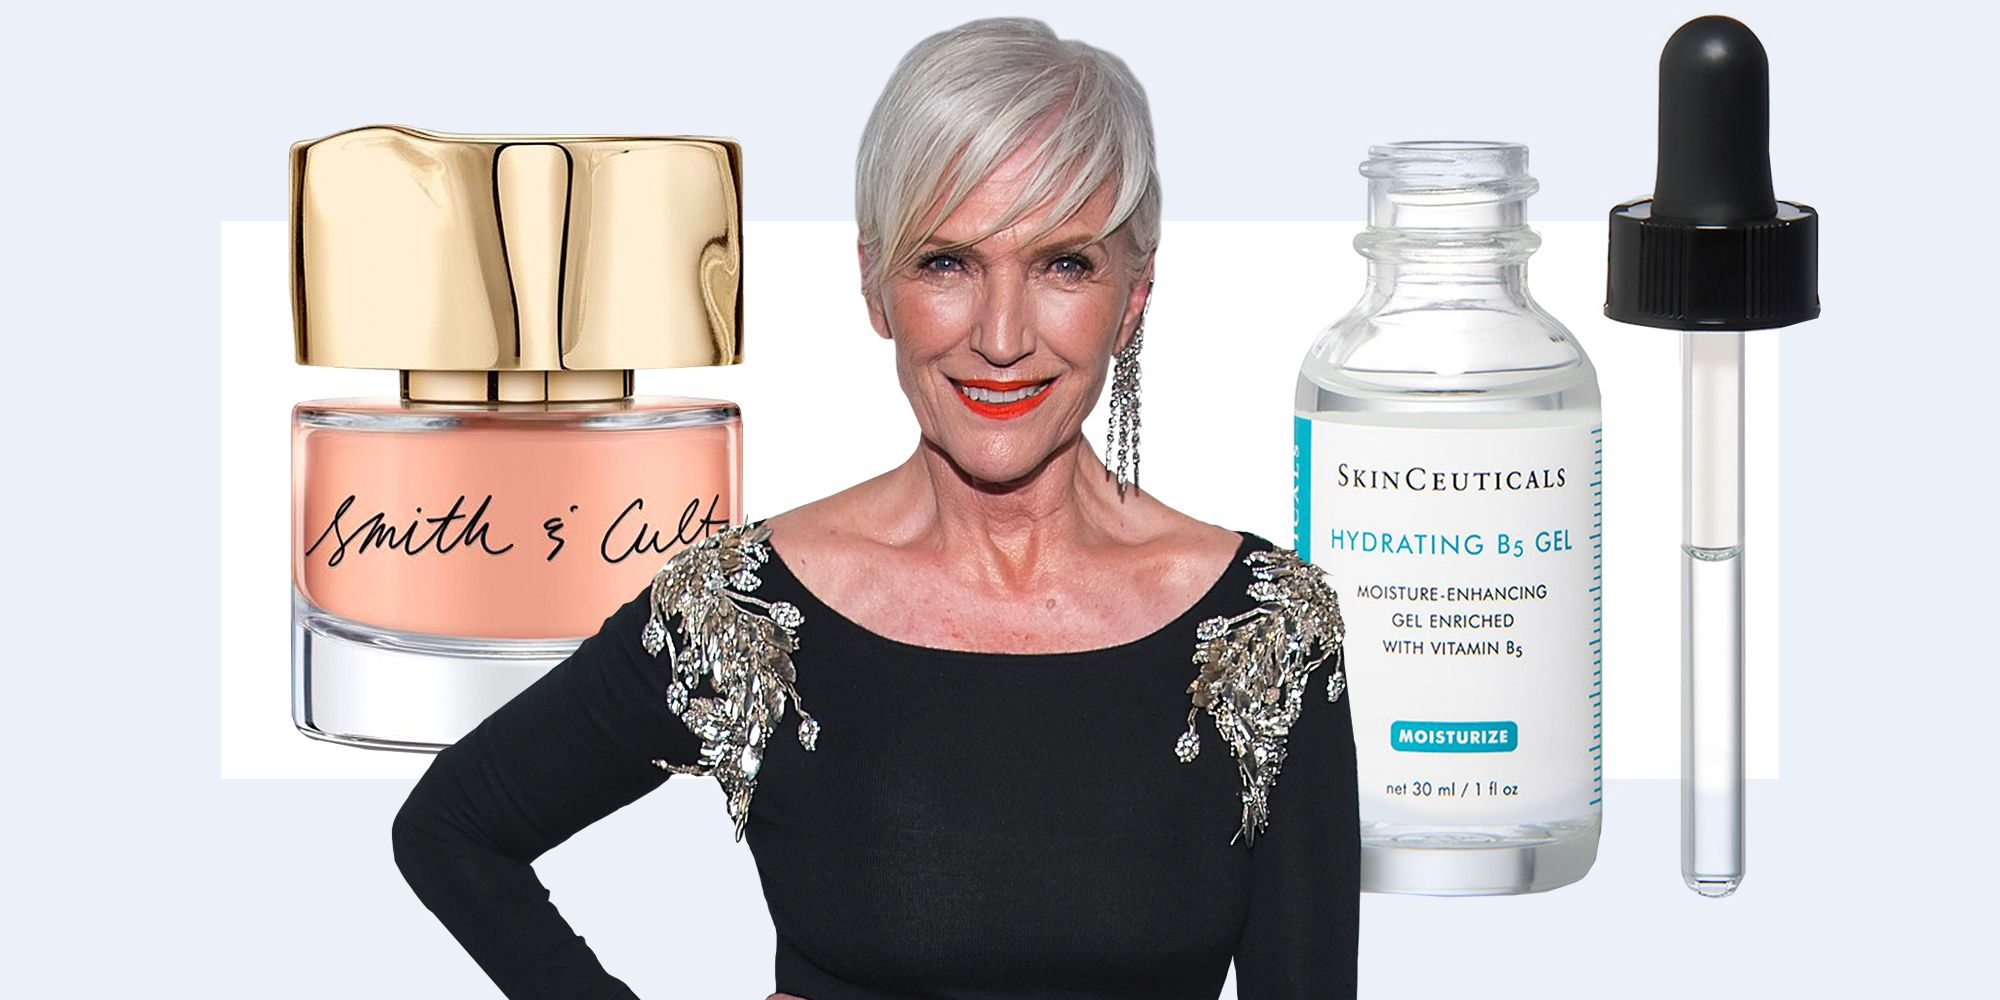 How to Look Younger - 12 Ways to Look Younger, According to Experts